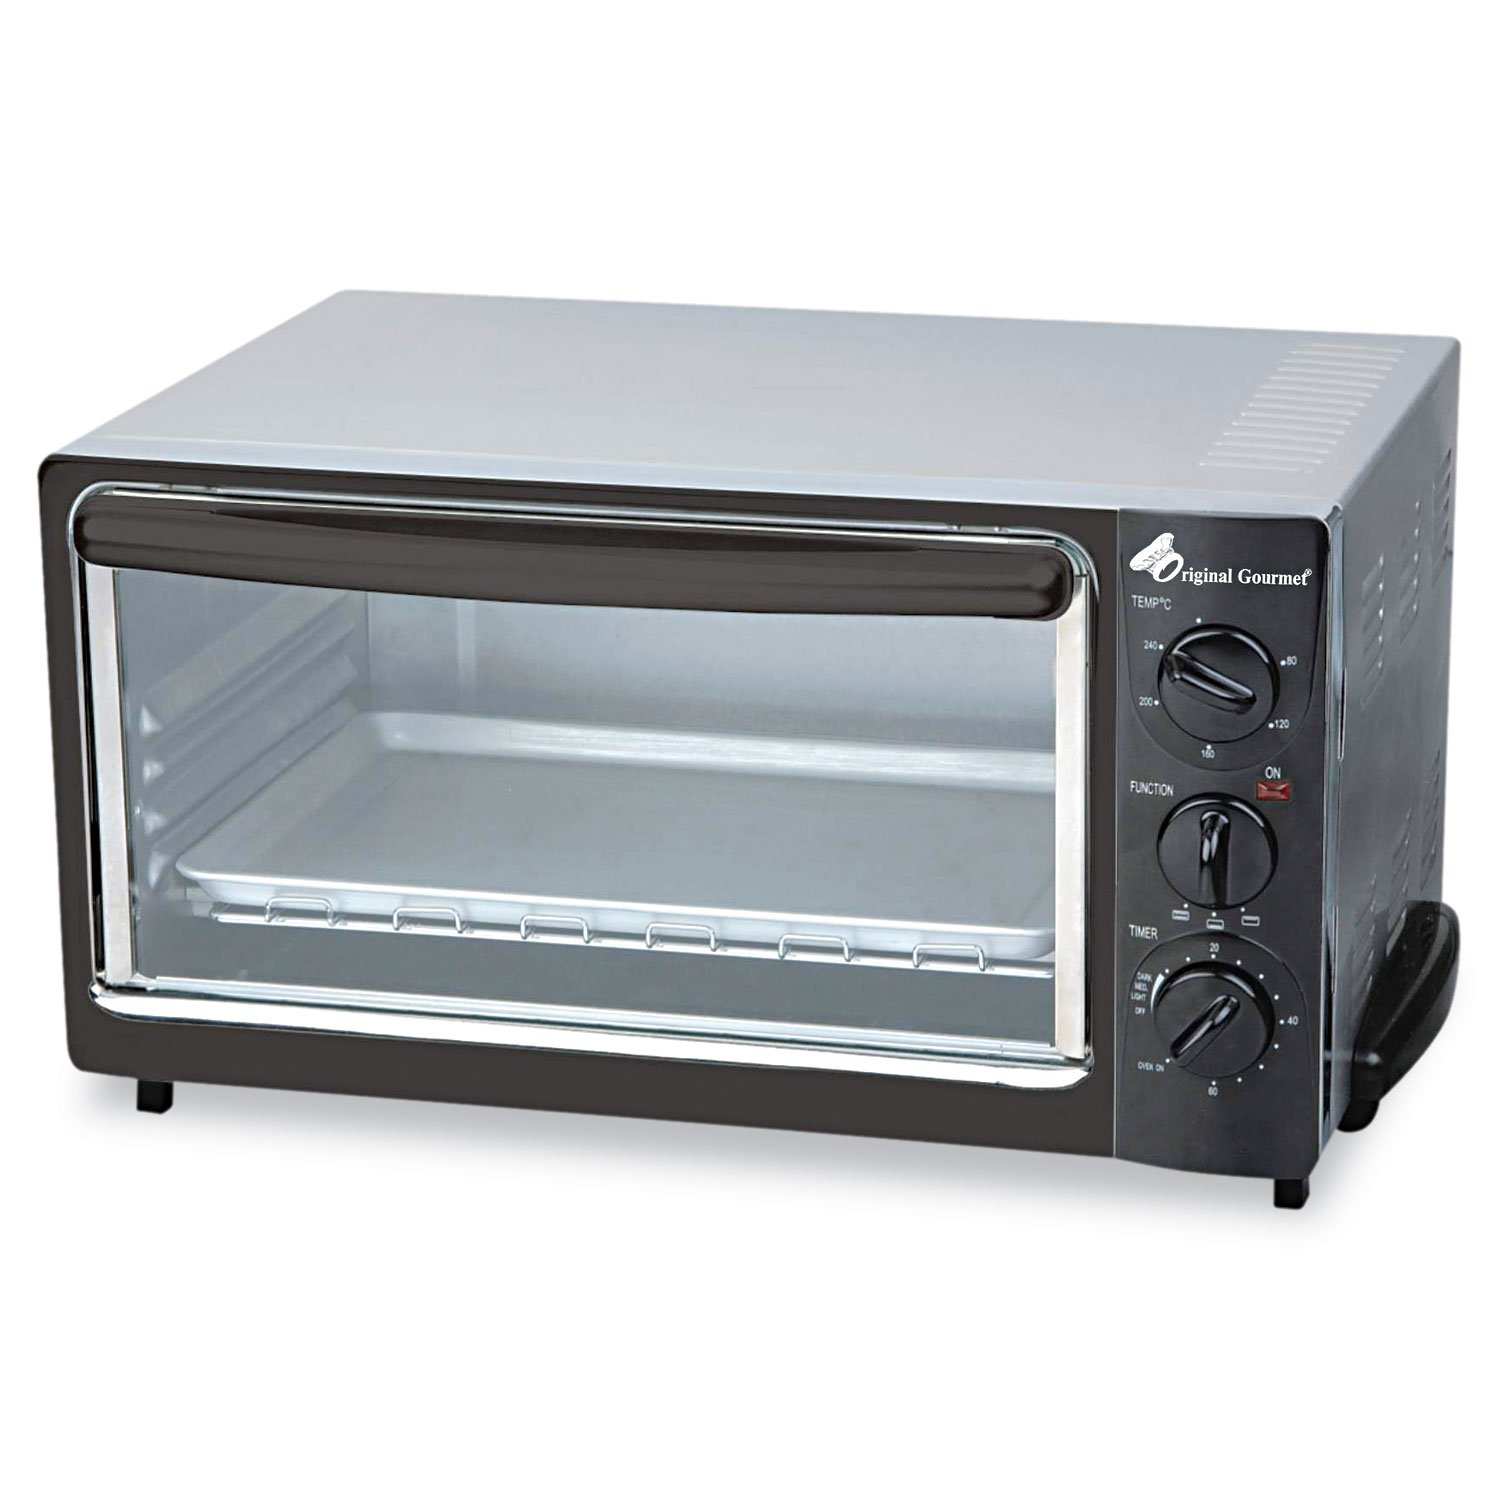 Coffee Pro OG22 Multi-Function Toaster Oven with Multi-Use Pan, 15 x 10 x 8, Black/Stainless